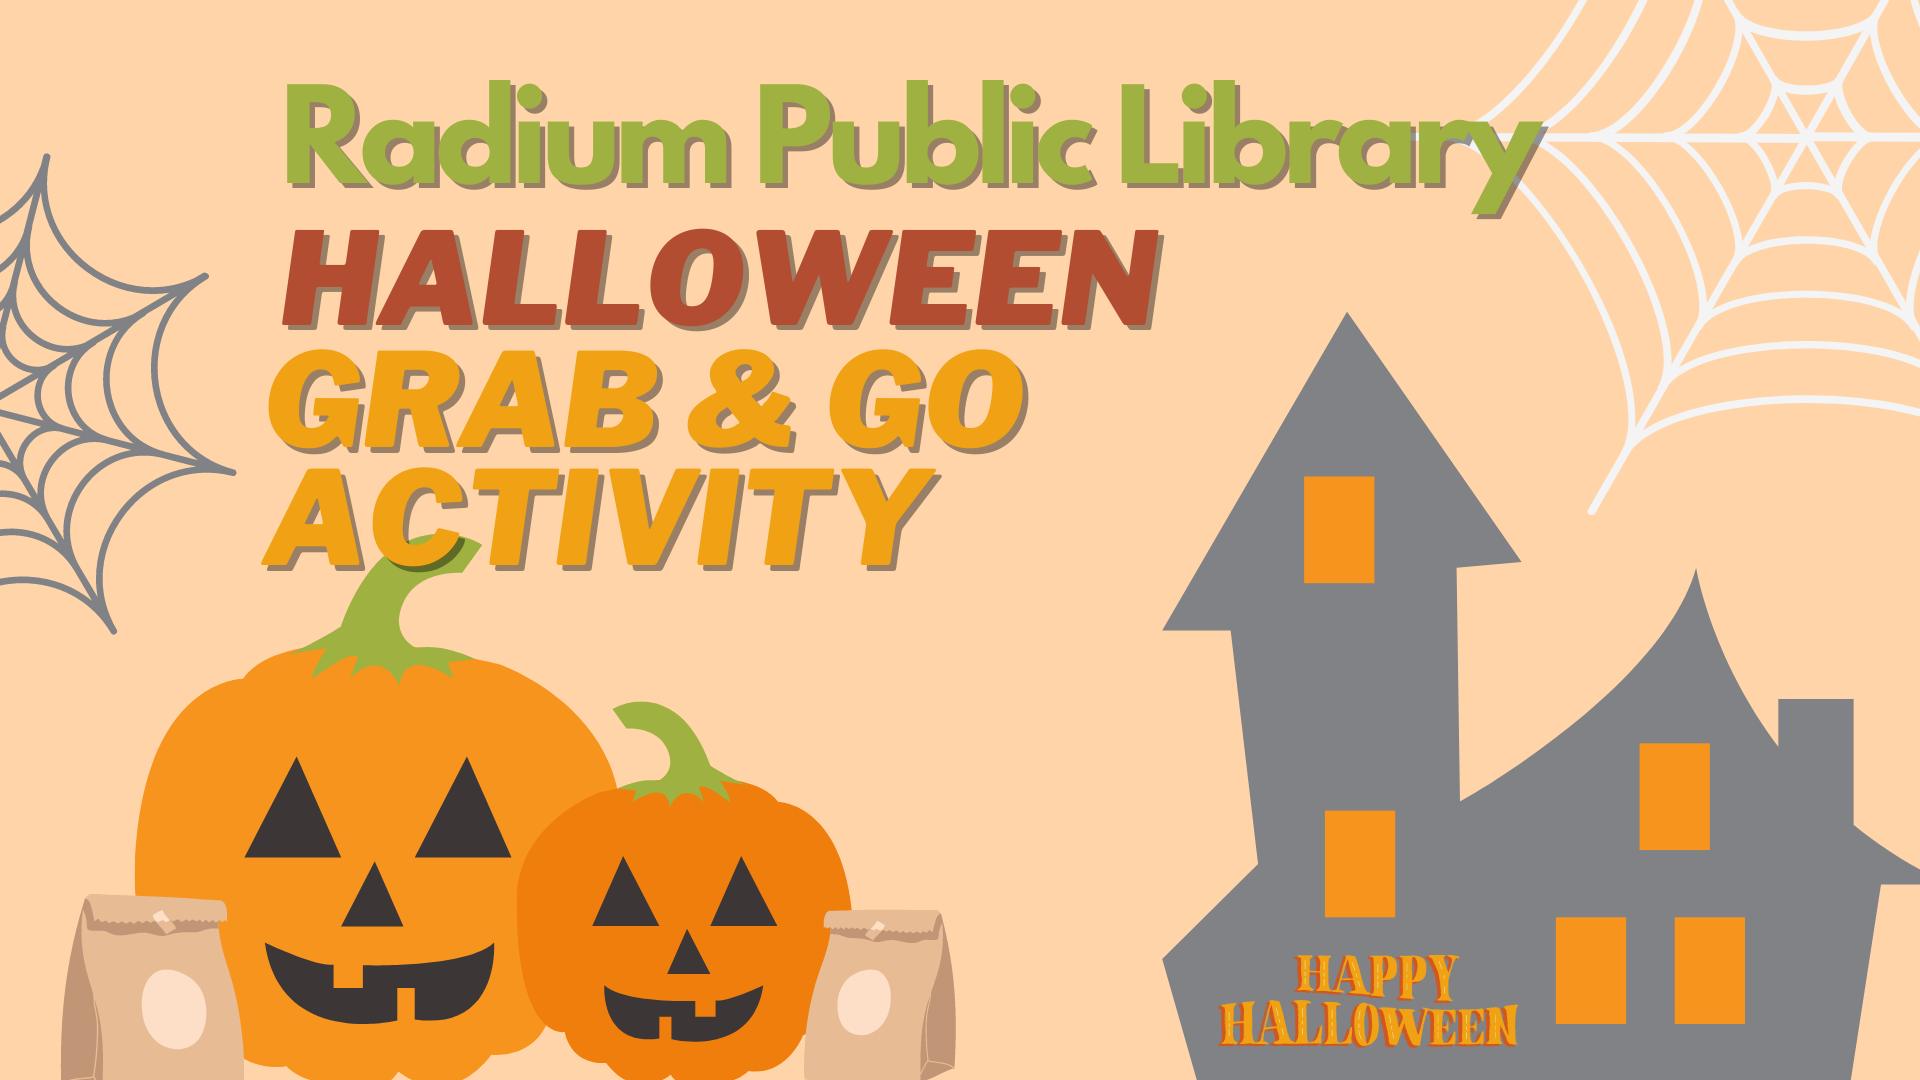 Halloween Grab & Go Activity @ Radium Public Library